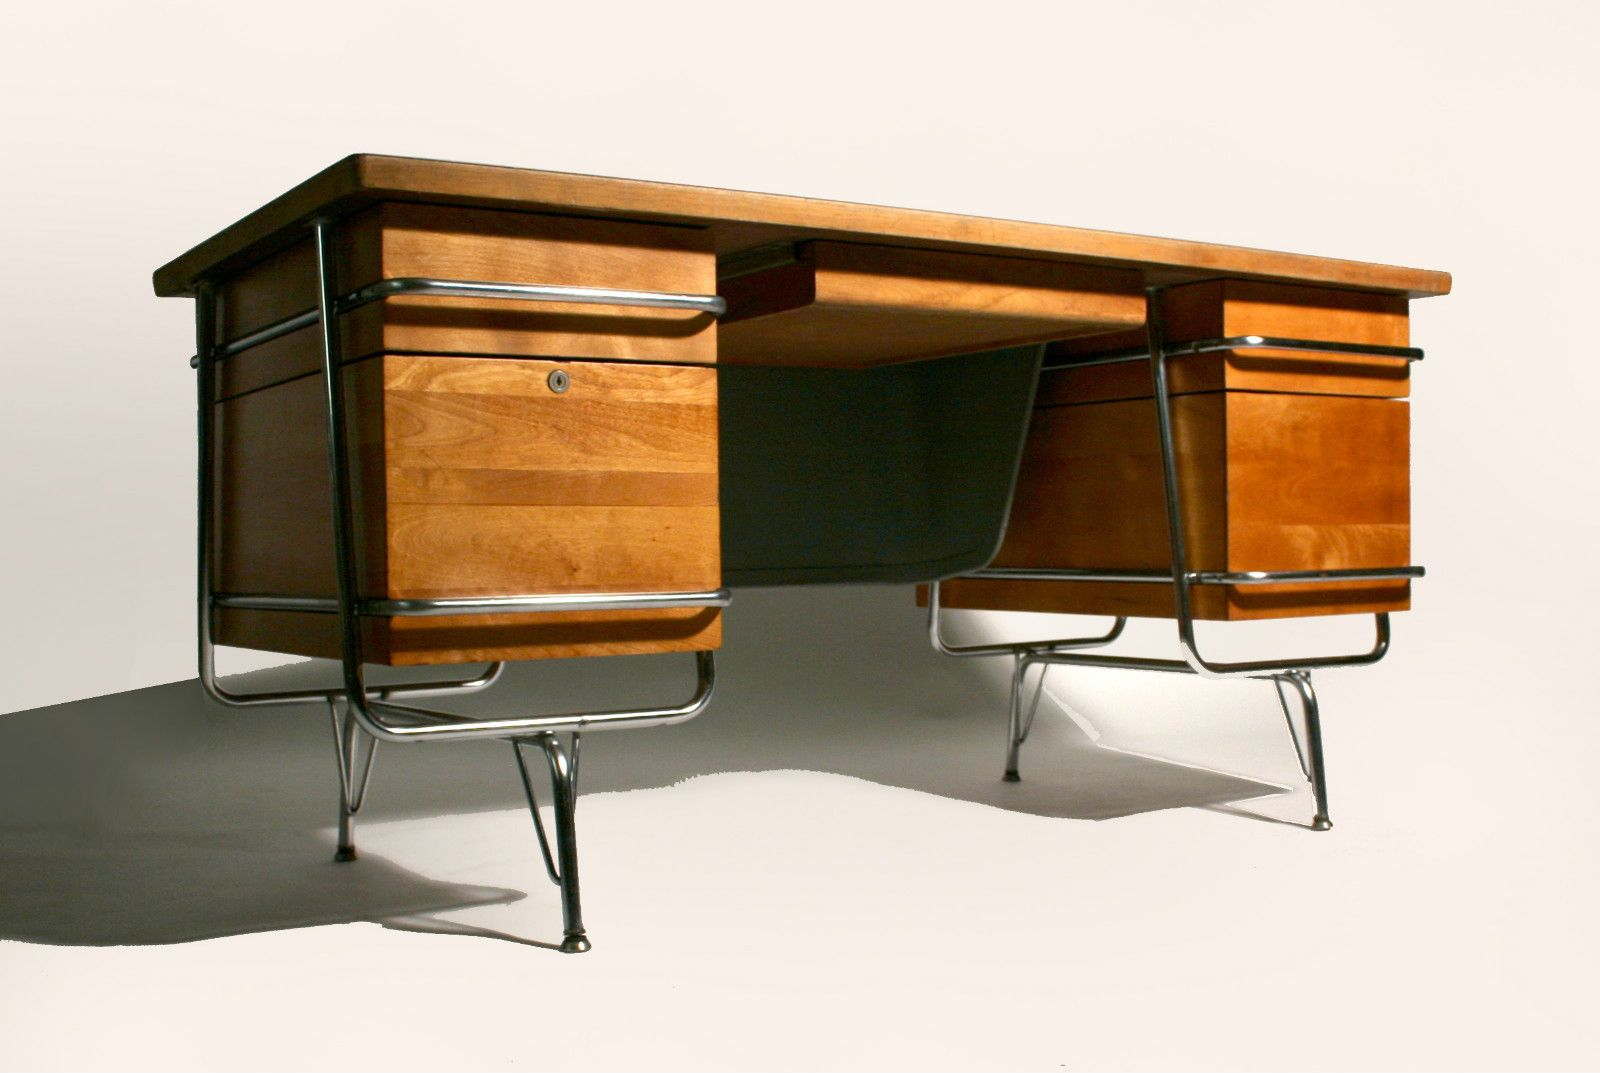 Unusual Desk The Trimline Desk By Kem Weber An Unusual Mix Of Chrome And Birch